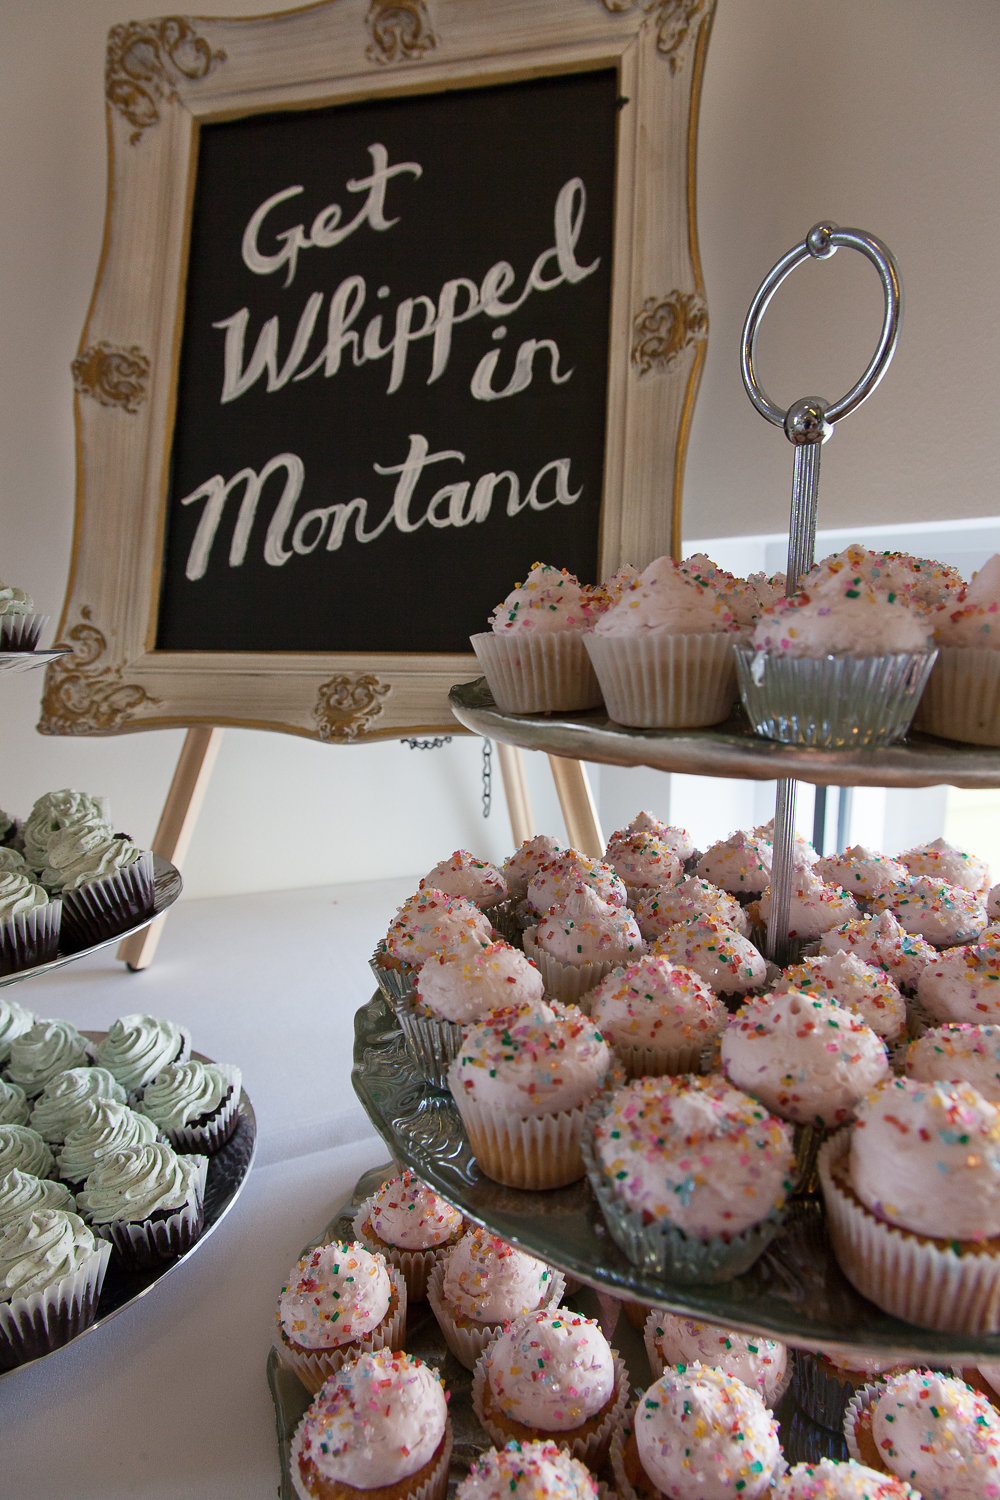 How to make a networking event super rad -- with cupcakes from Whipped in Montana!